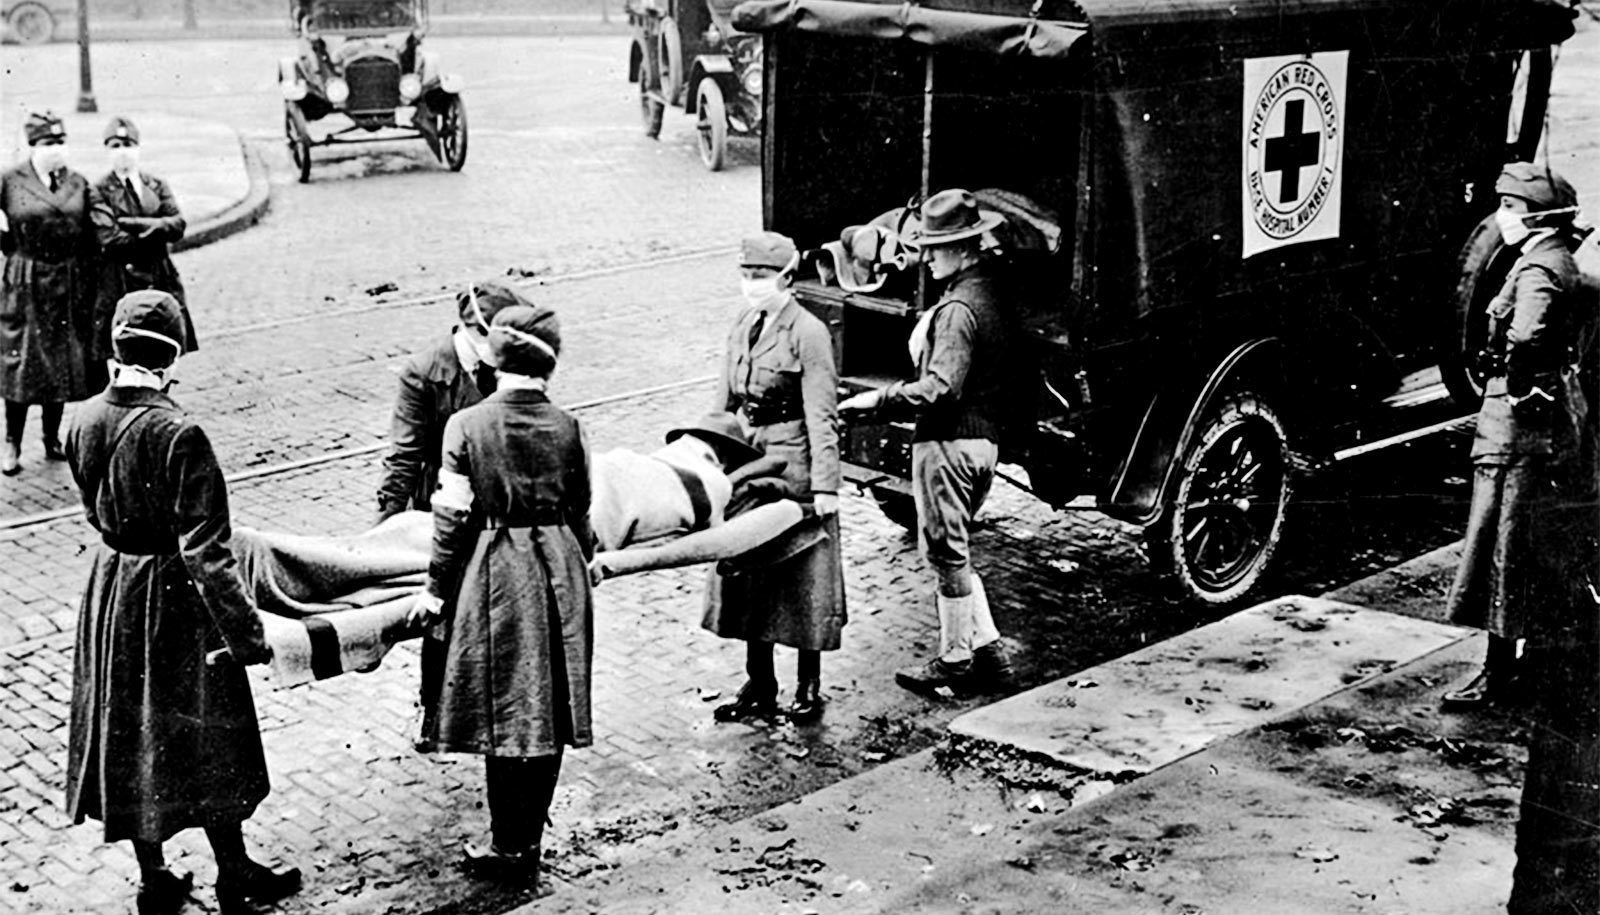 A photo of a body being lifted on a stretcher into an ambulance, during the 1918 flu pandemic